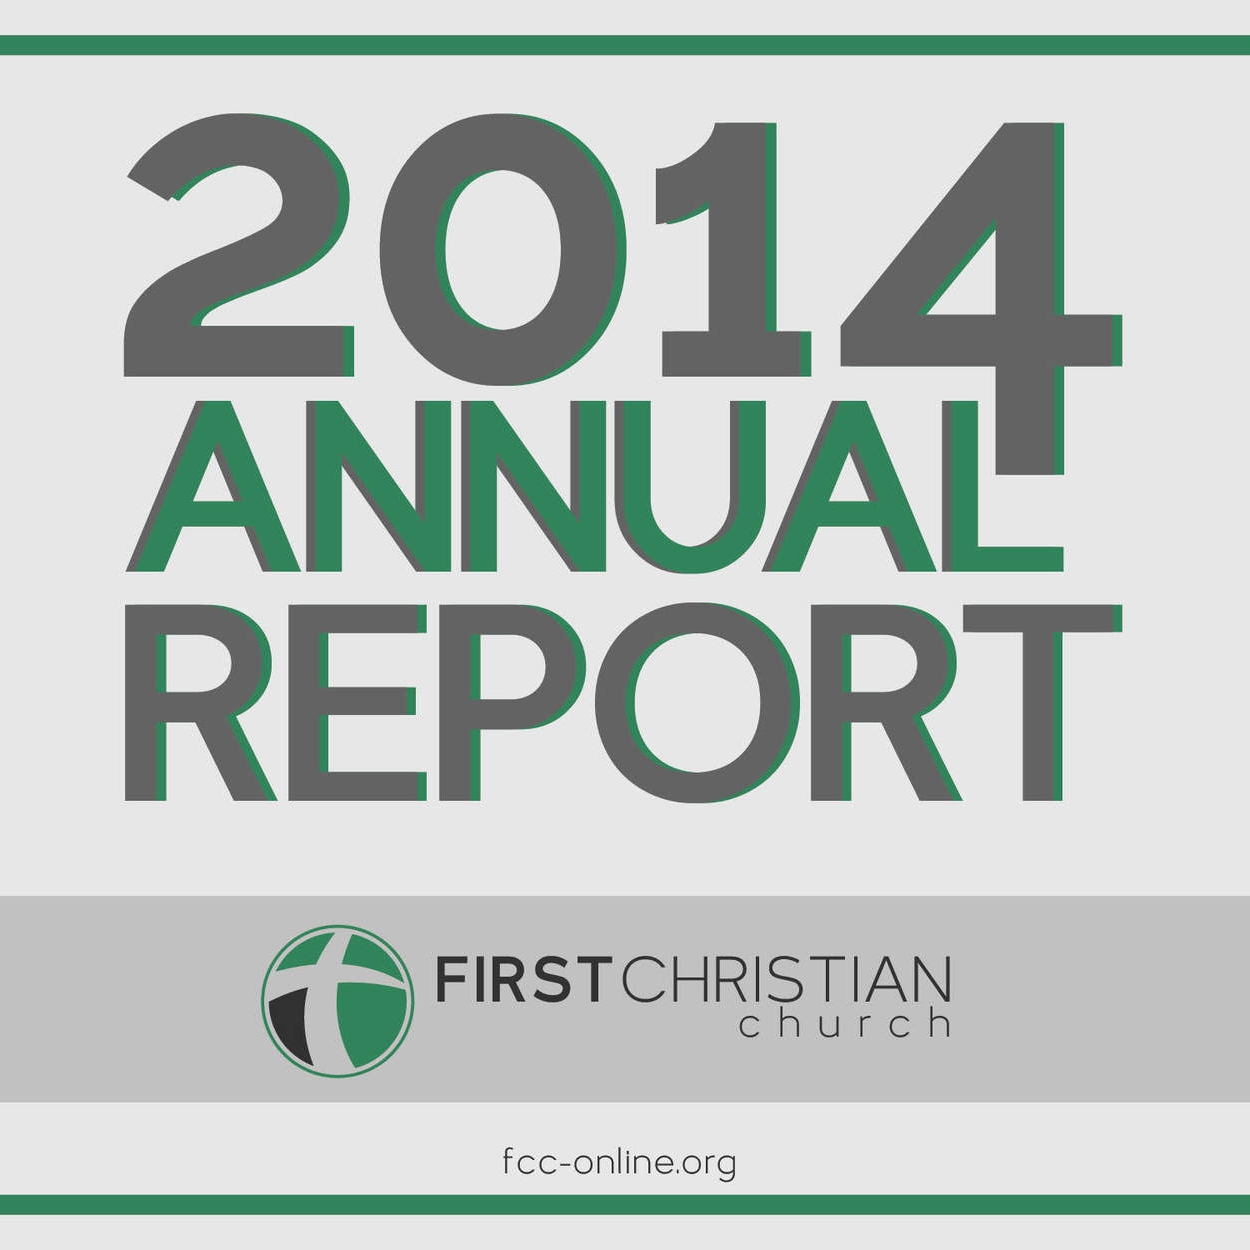 First Christian Church 2014 Annual Report